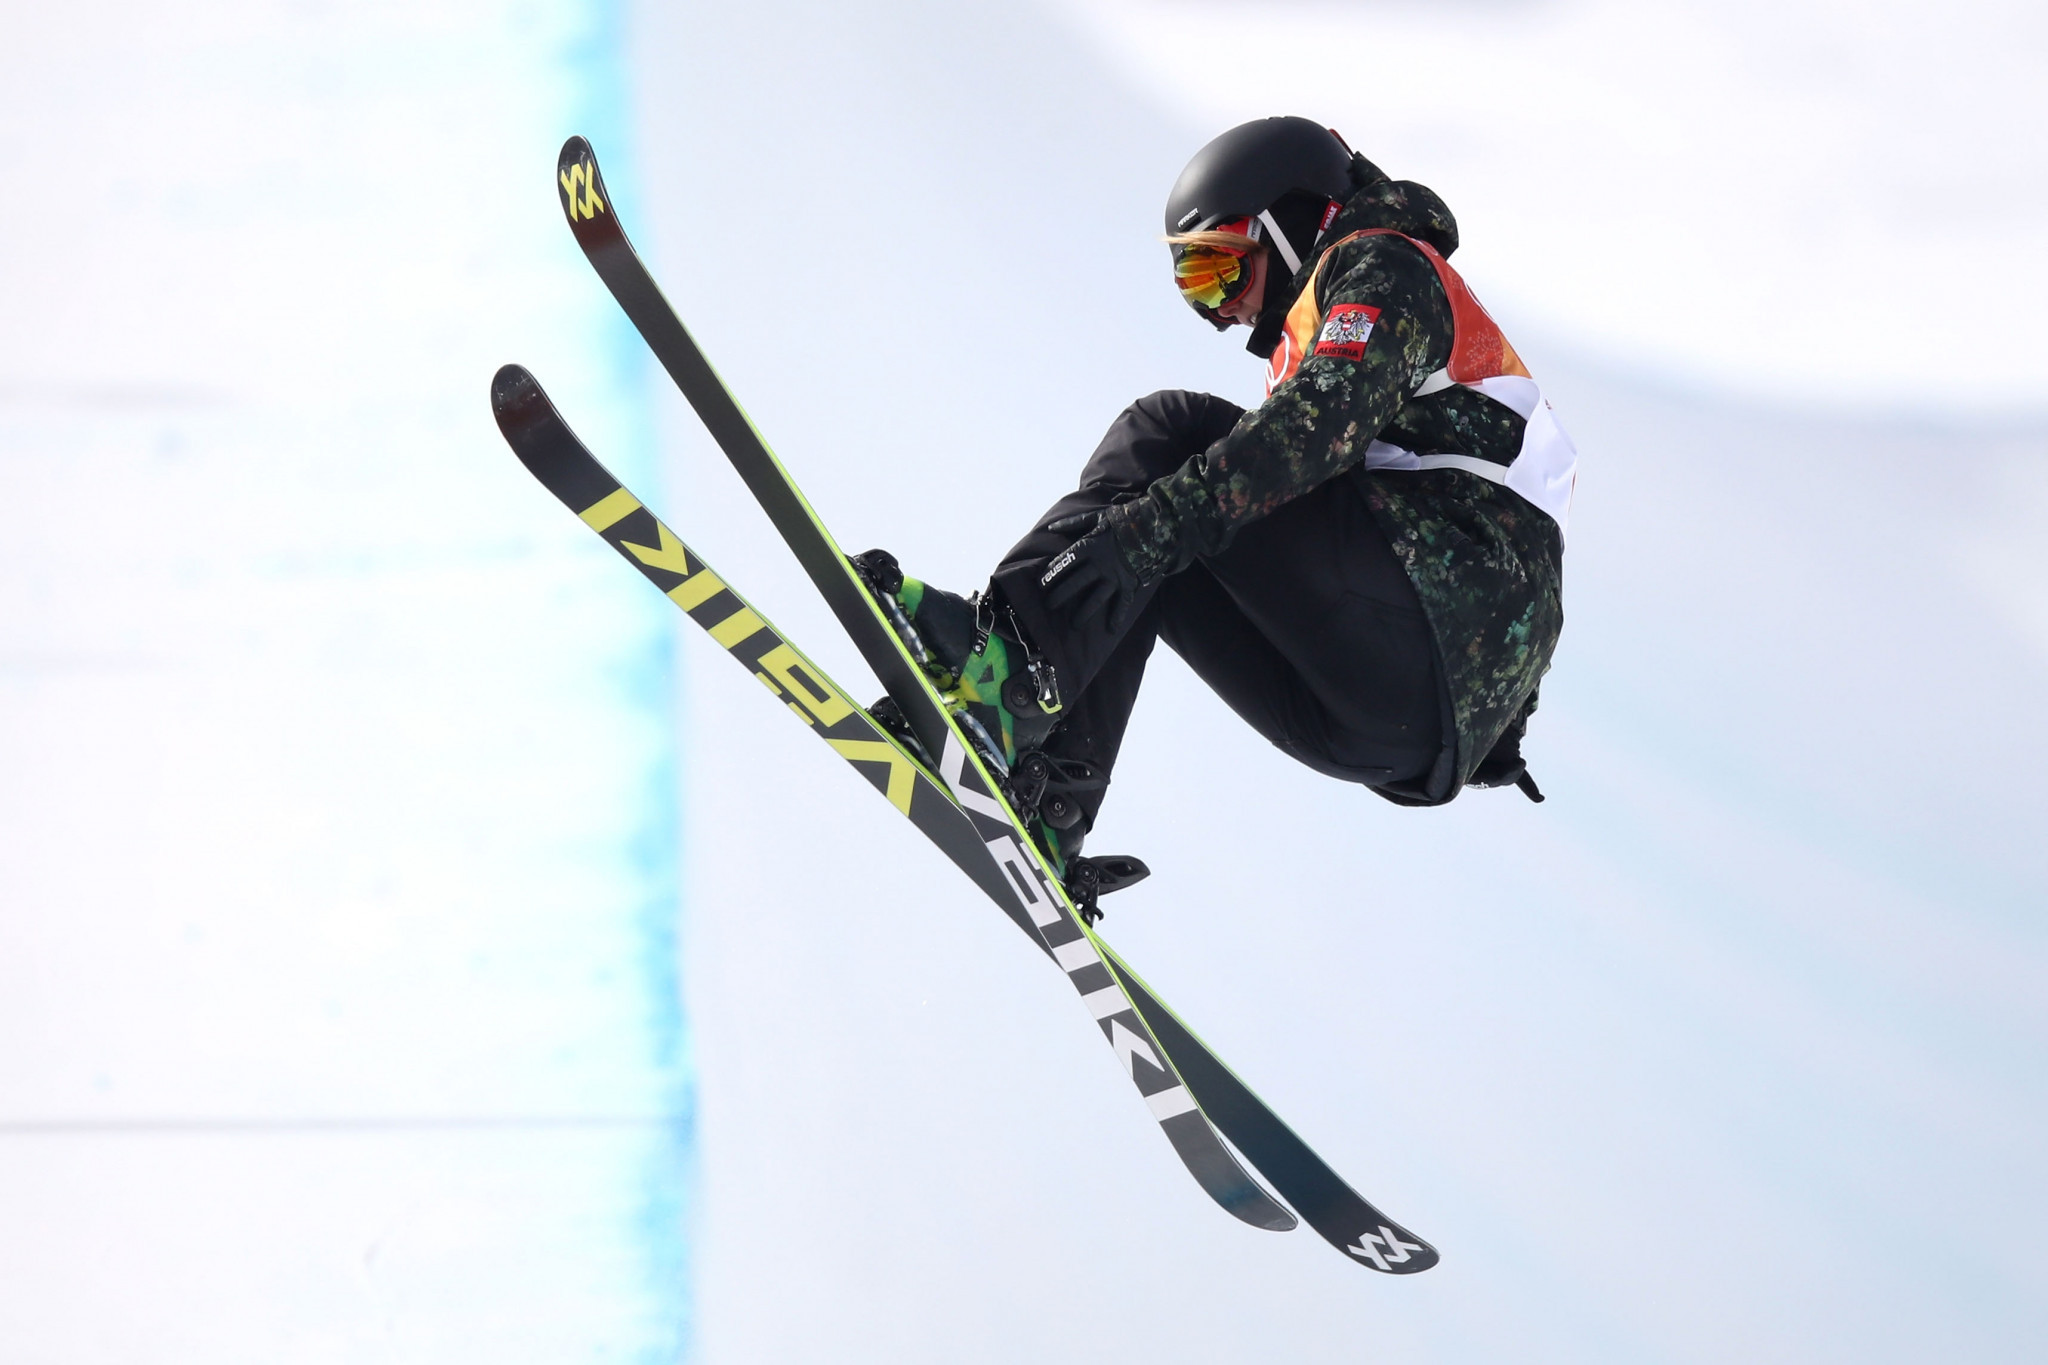 Elisabeth Gram won the Innsbruck 2012 Youth Olympic girls' halfpipe gold medal and narrowly missed the Pyeongchang 2018 final ©Getty Images